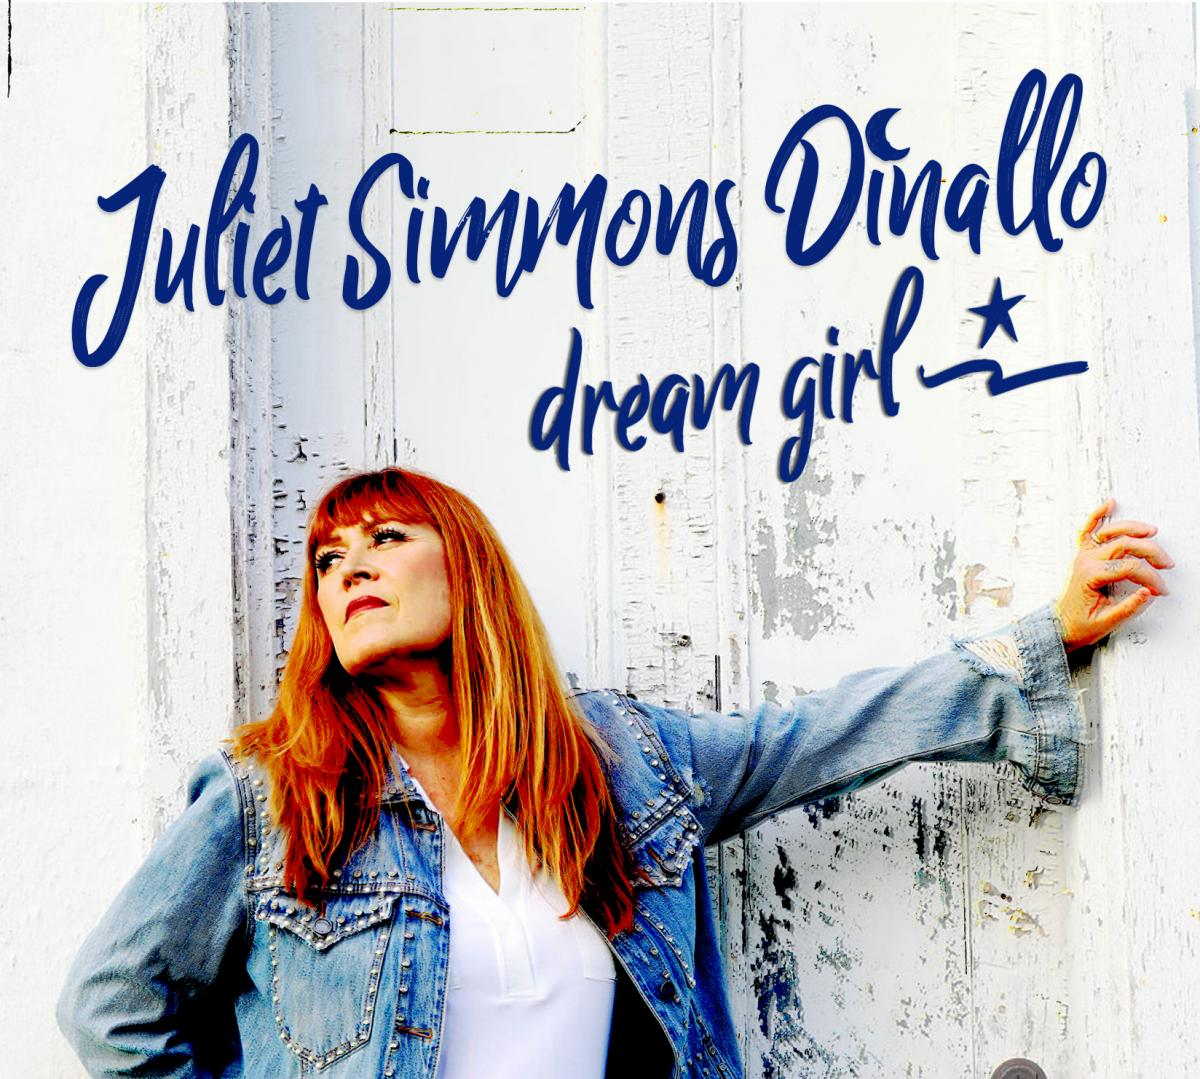 Country/Roots Singer Juliet Simmons Dinallo, Dream Girl, on November 16